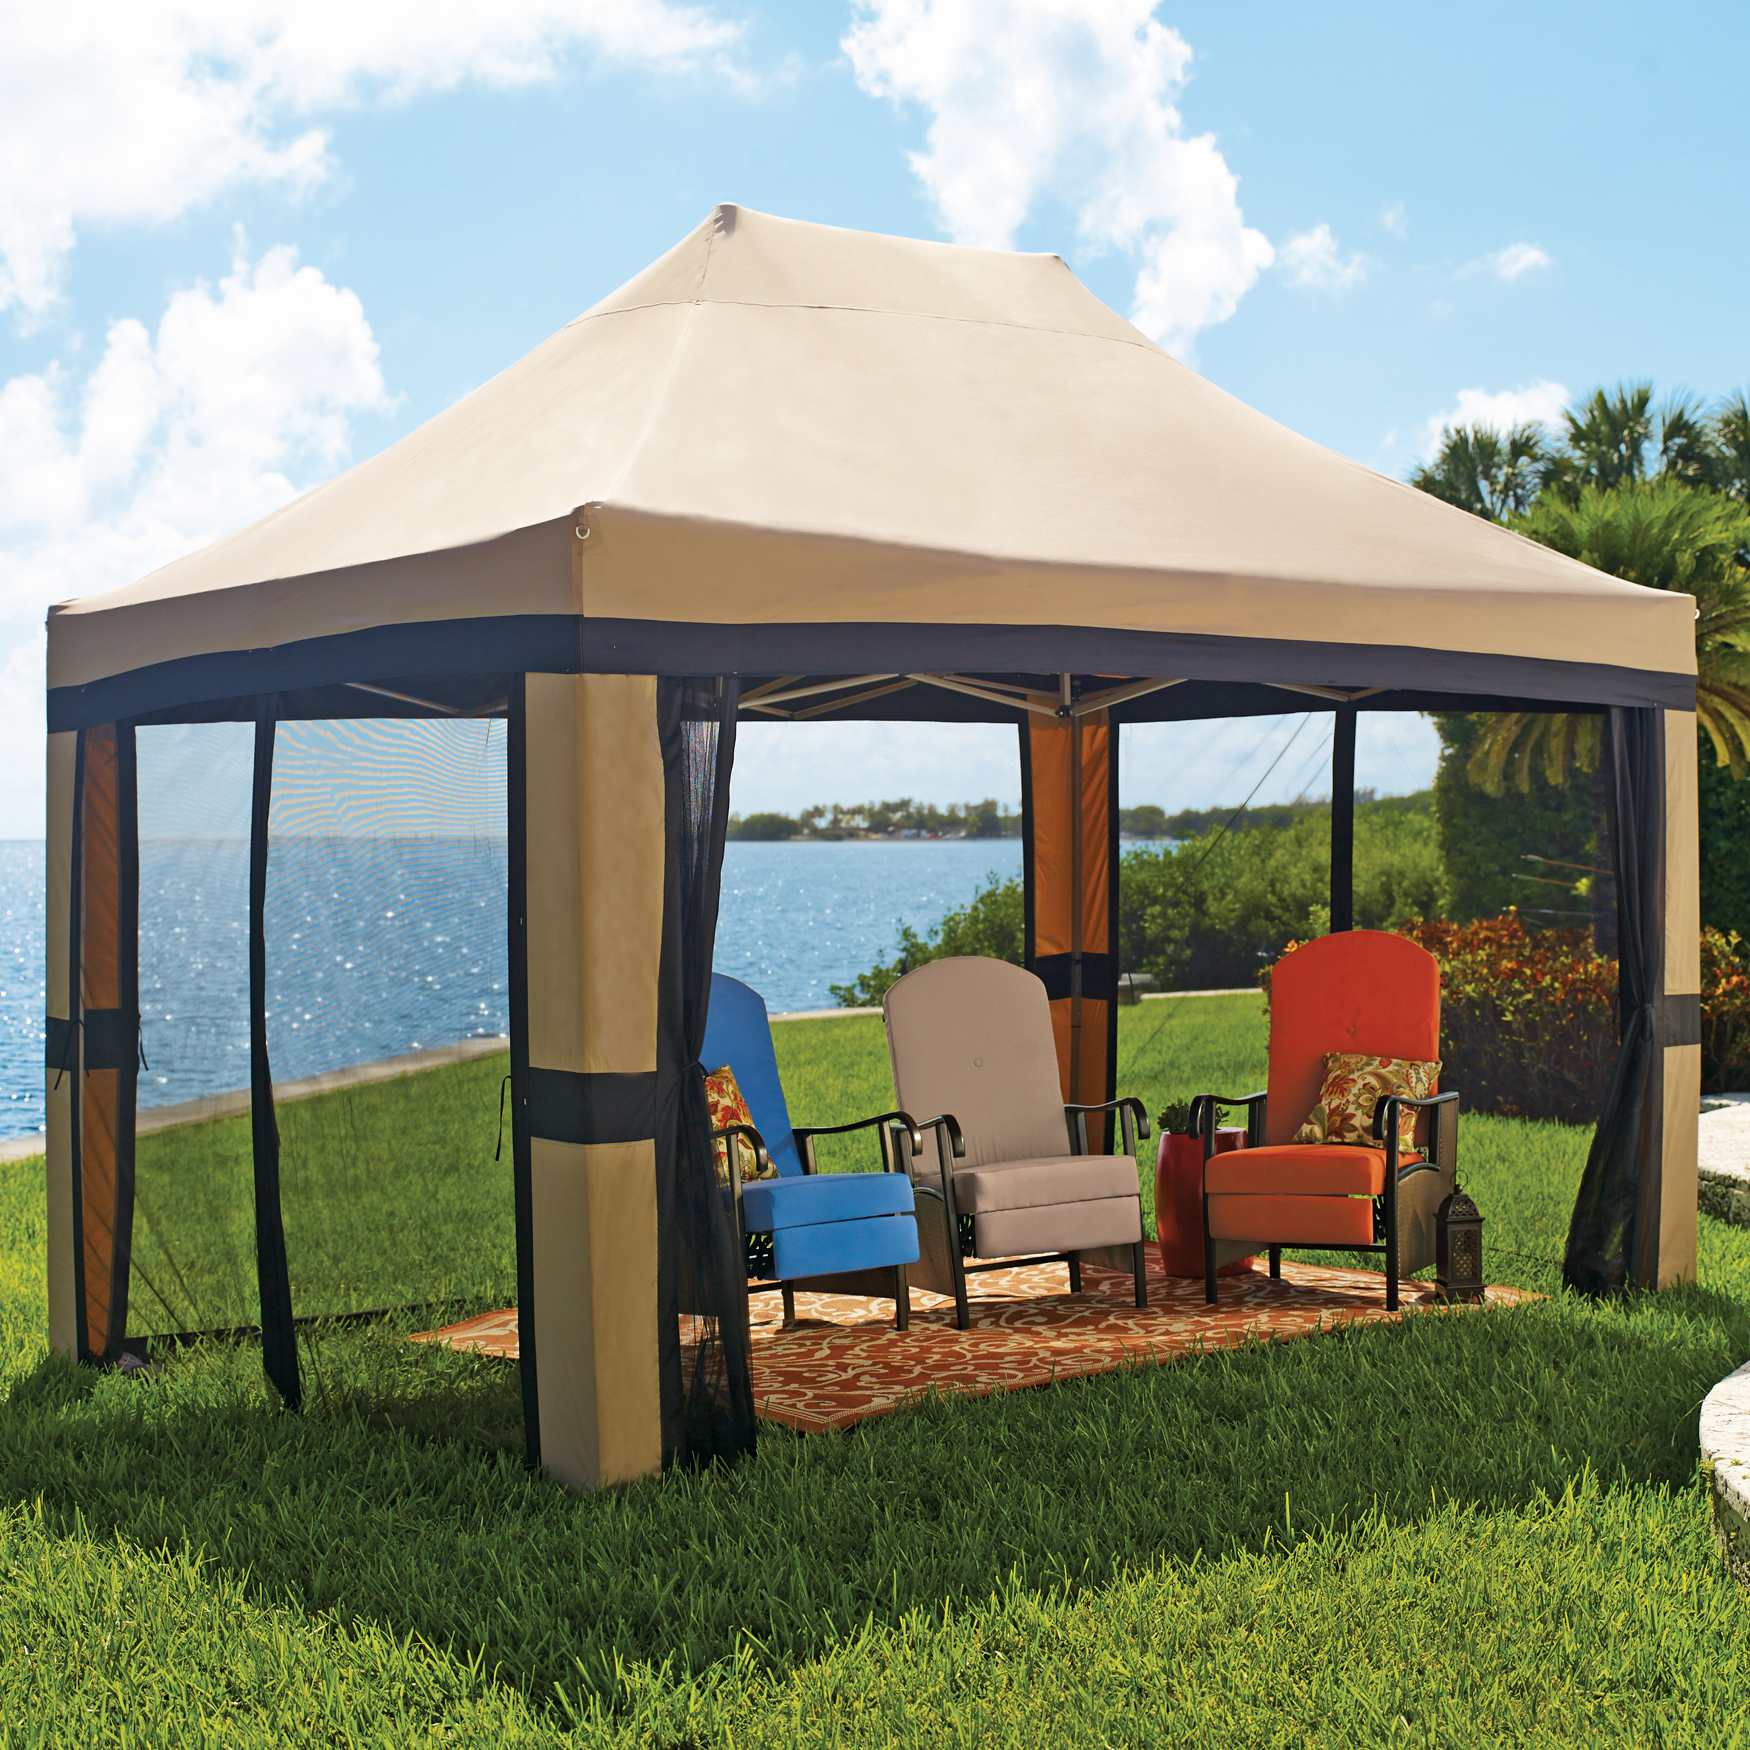 Oversized 10' x 15' Instant Pop Up Gazebo With Screen, TAUPE